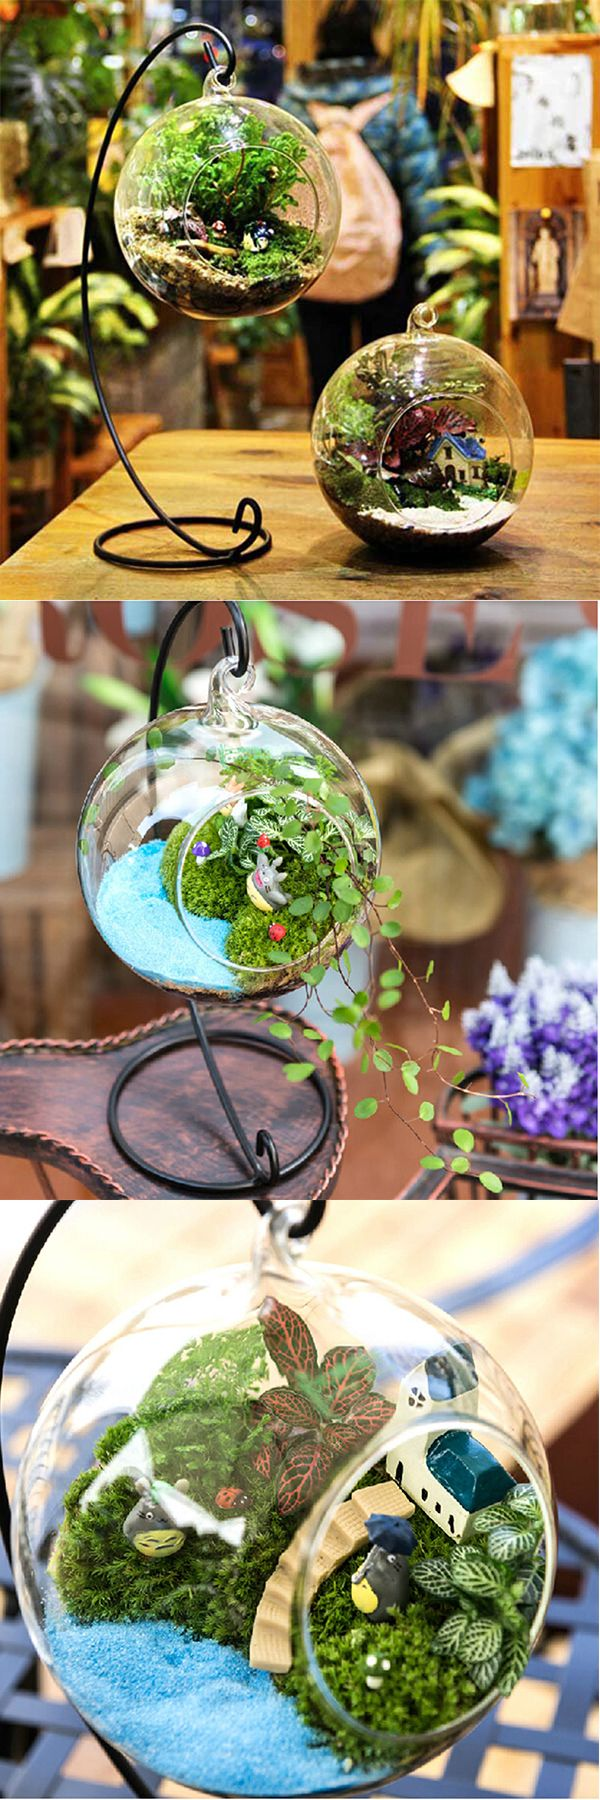 US$7.99 + Free shipping. DIY Micro Landscape Plant Glass Hanging Ball, Home Decoration.A Good decoration for bedroom, living room, balcony and office. You can put candles or flowers into the bottle. Create a mini garden as your like.